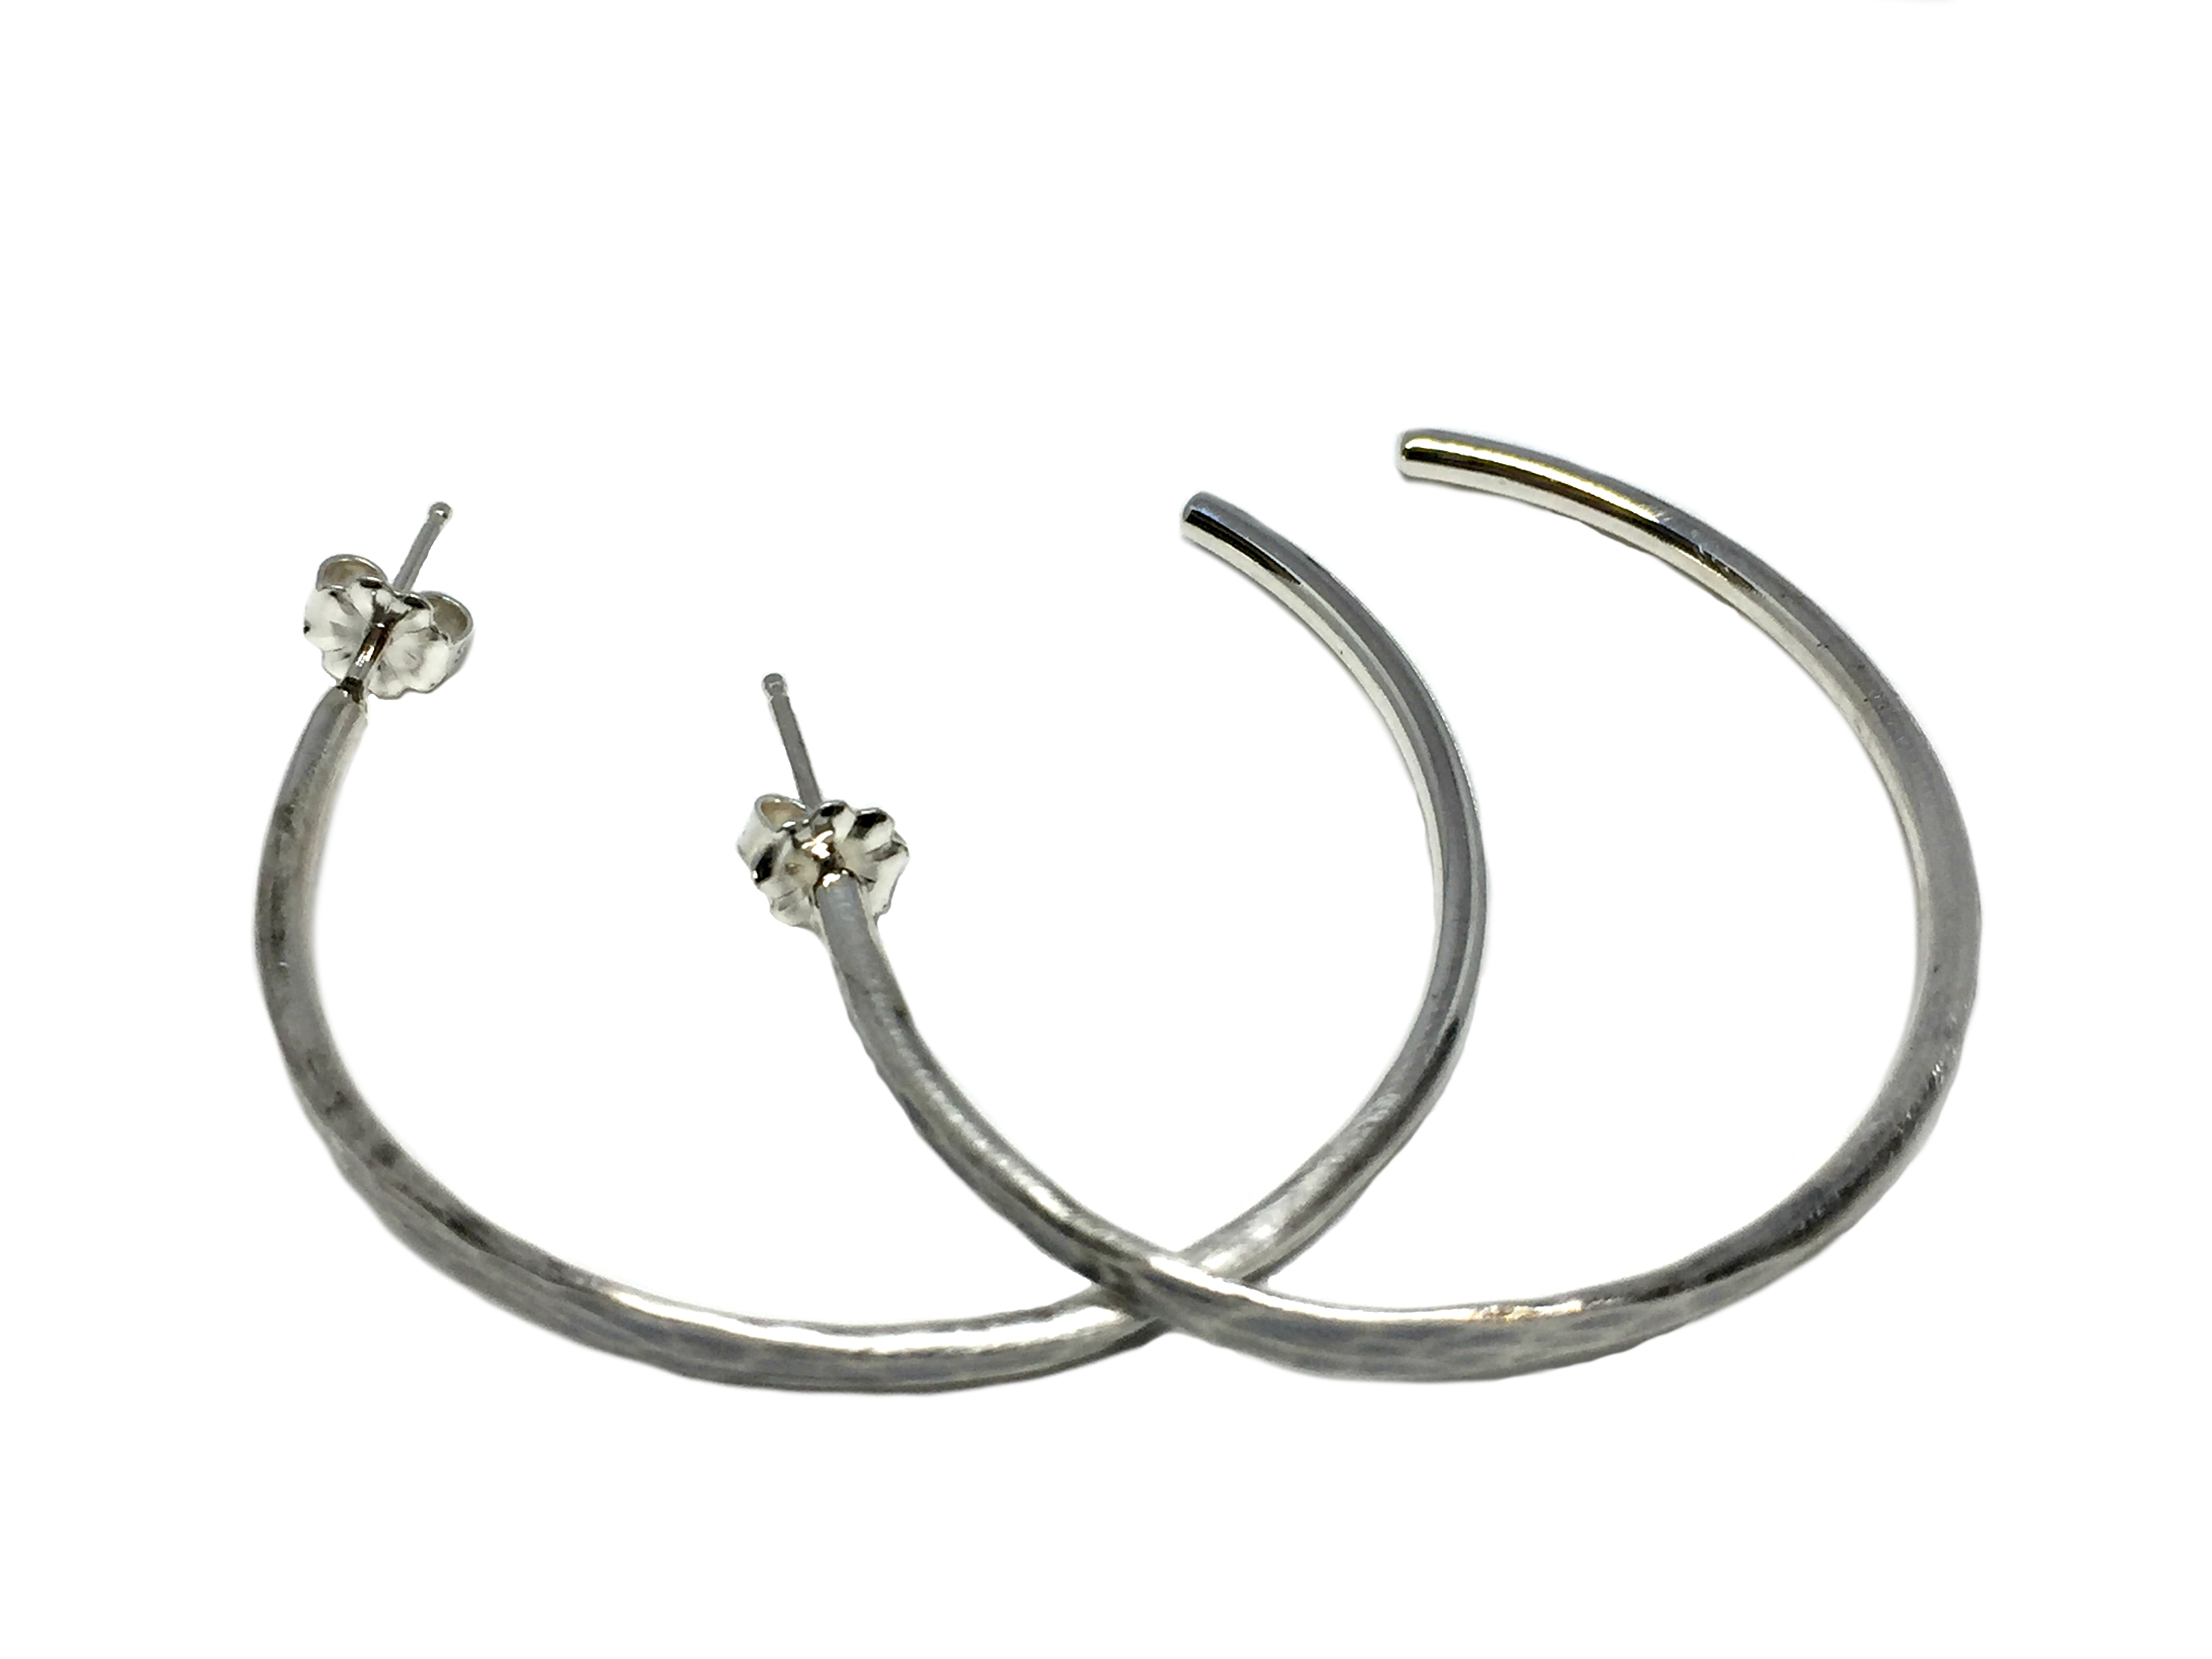 Medium Sterling Silver Hammered Hoop Earrings by Karyn Chopik | Effusion Art Gallery + Cast Glass Studio, Invermere BC